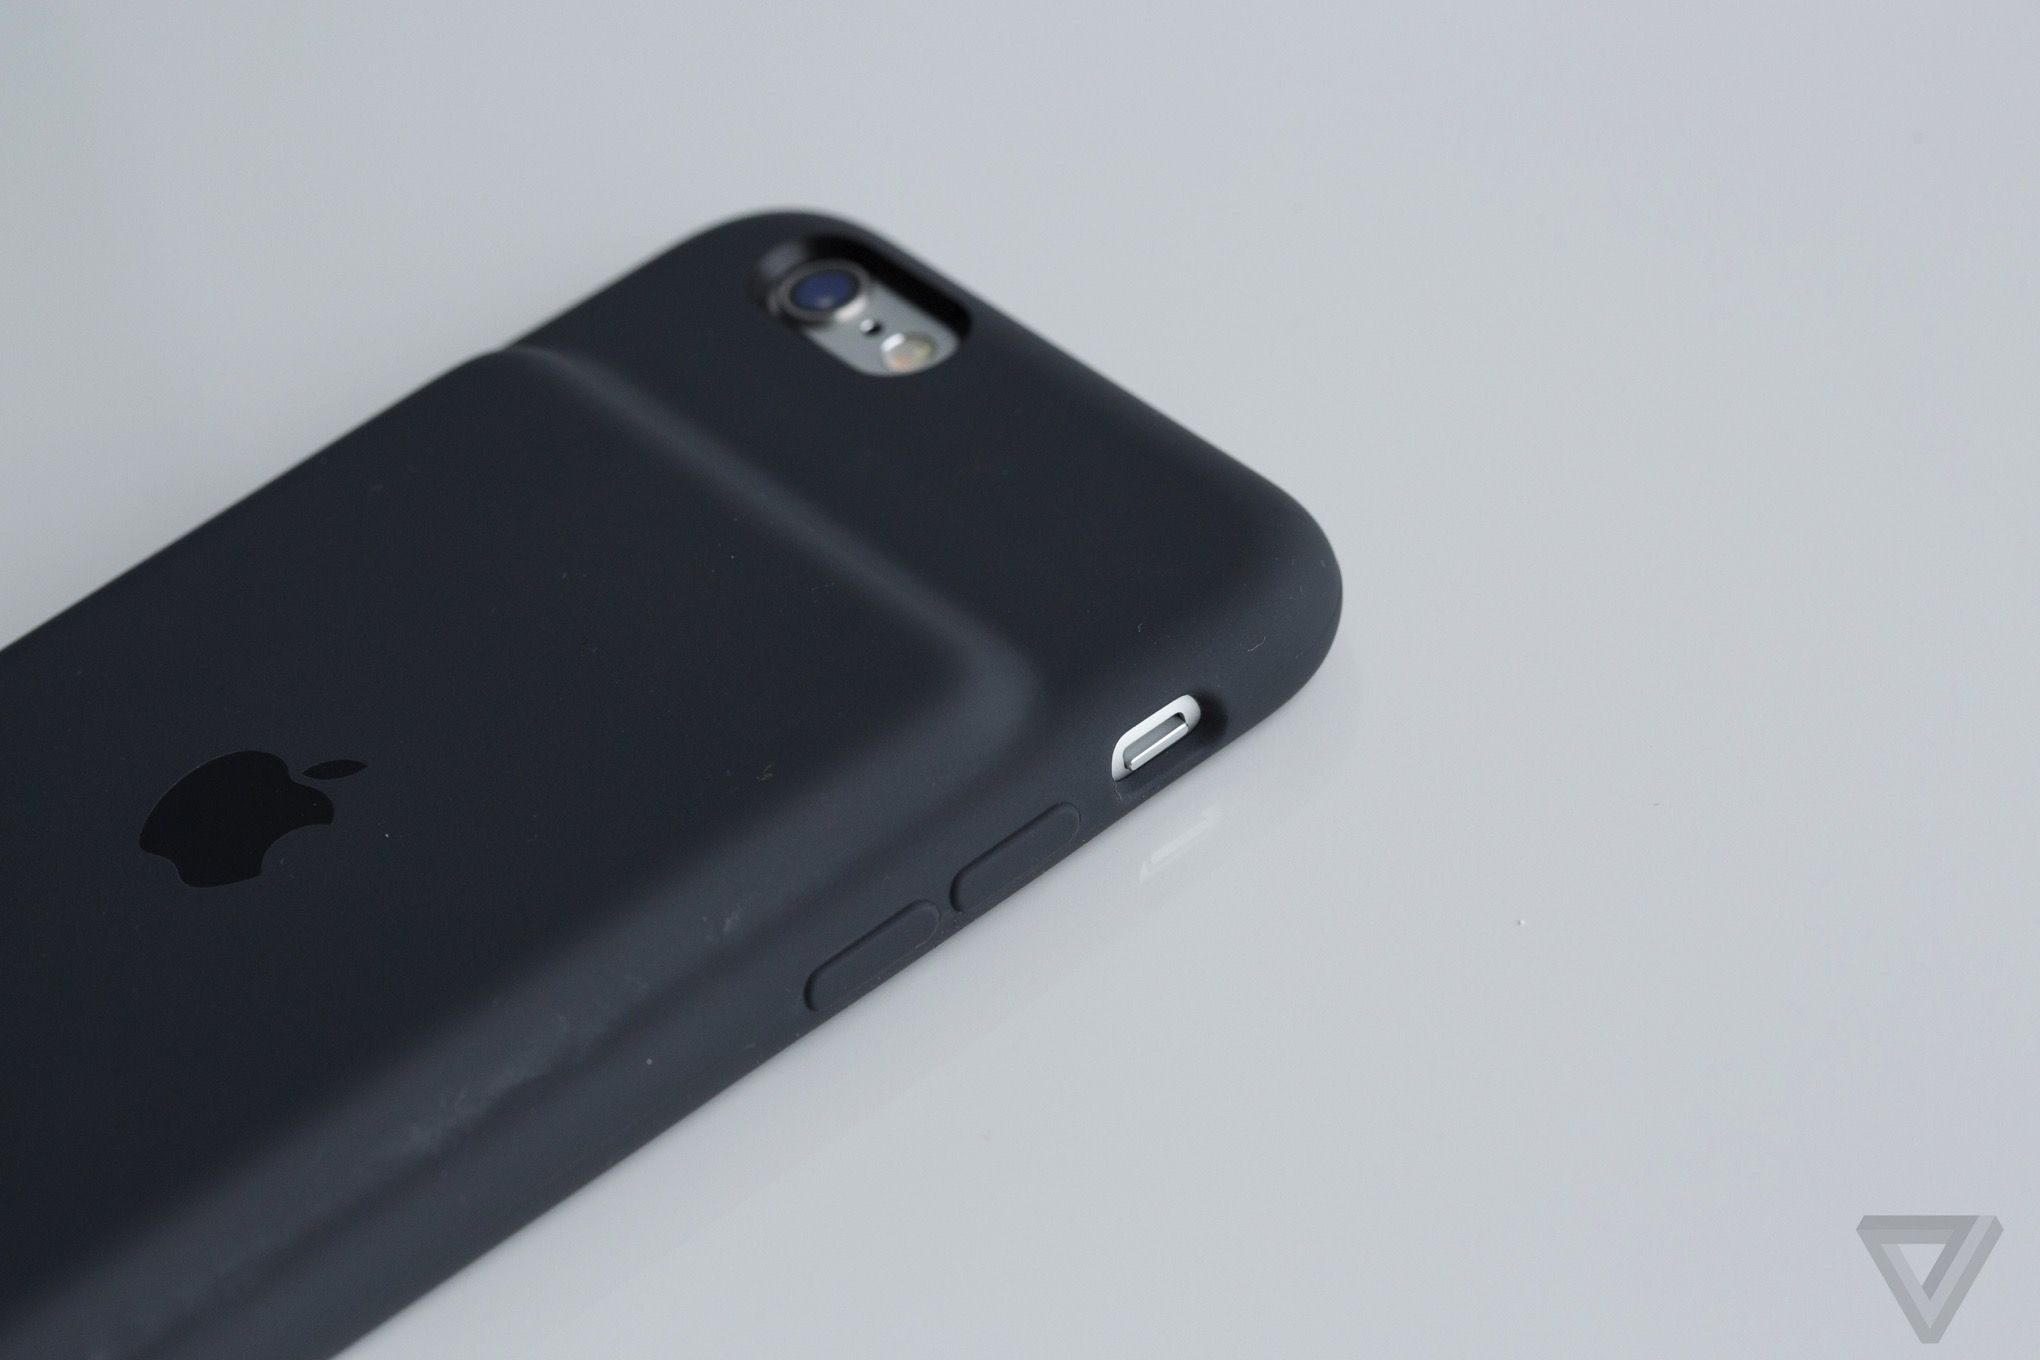 Apple S New 99 Iphone Battery Case Doesn T Measure Up